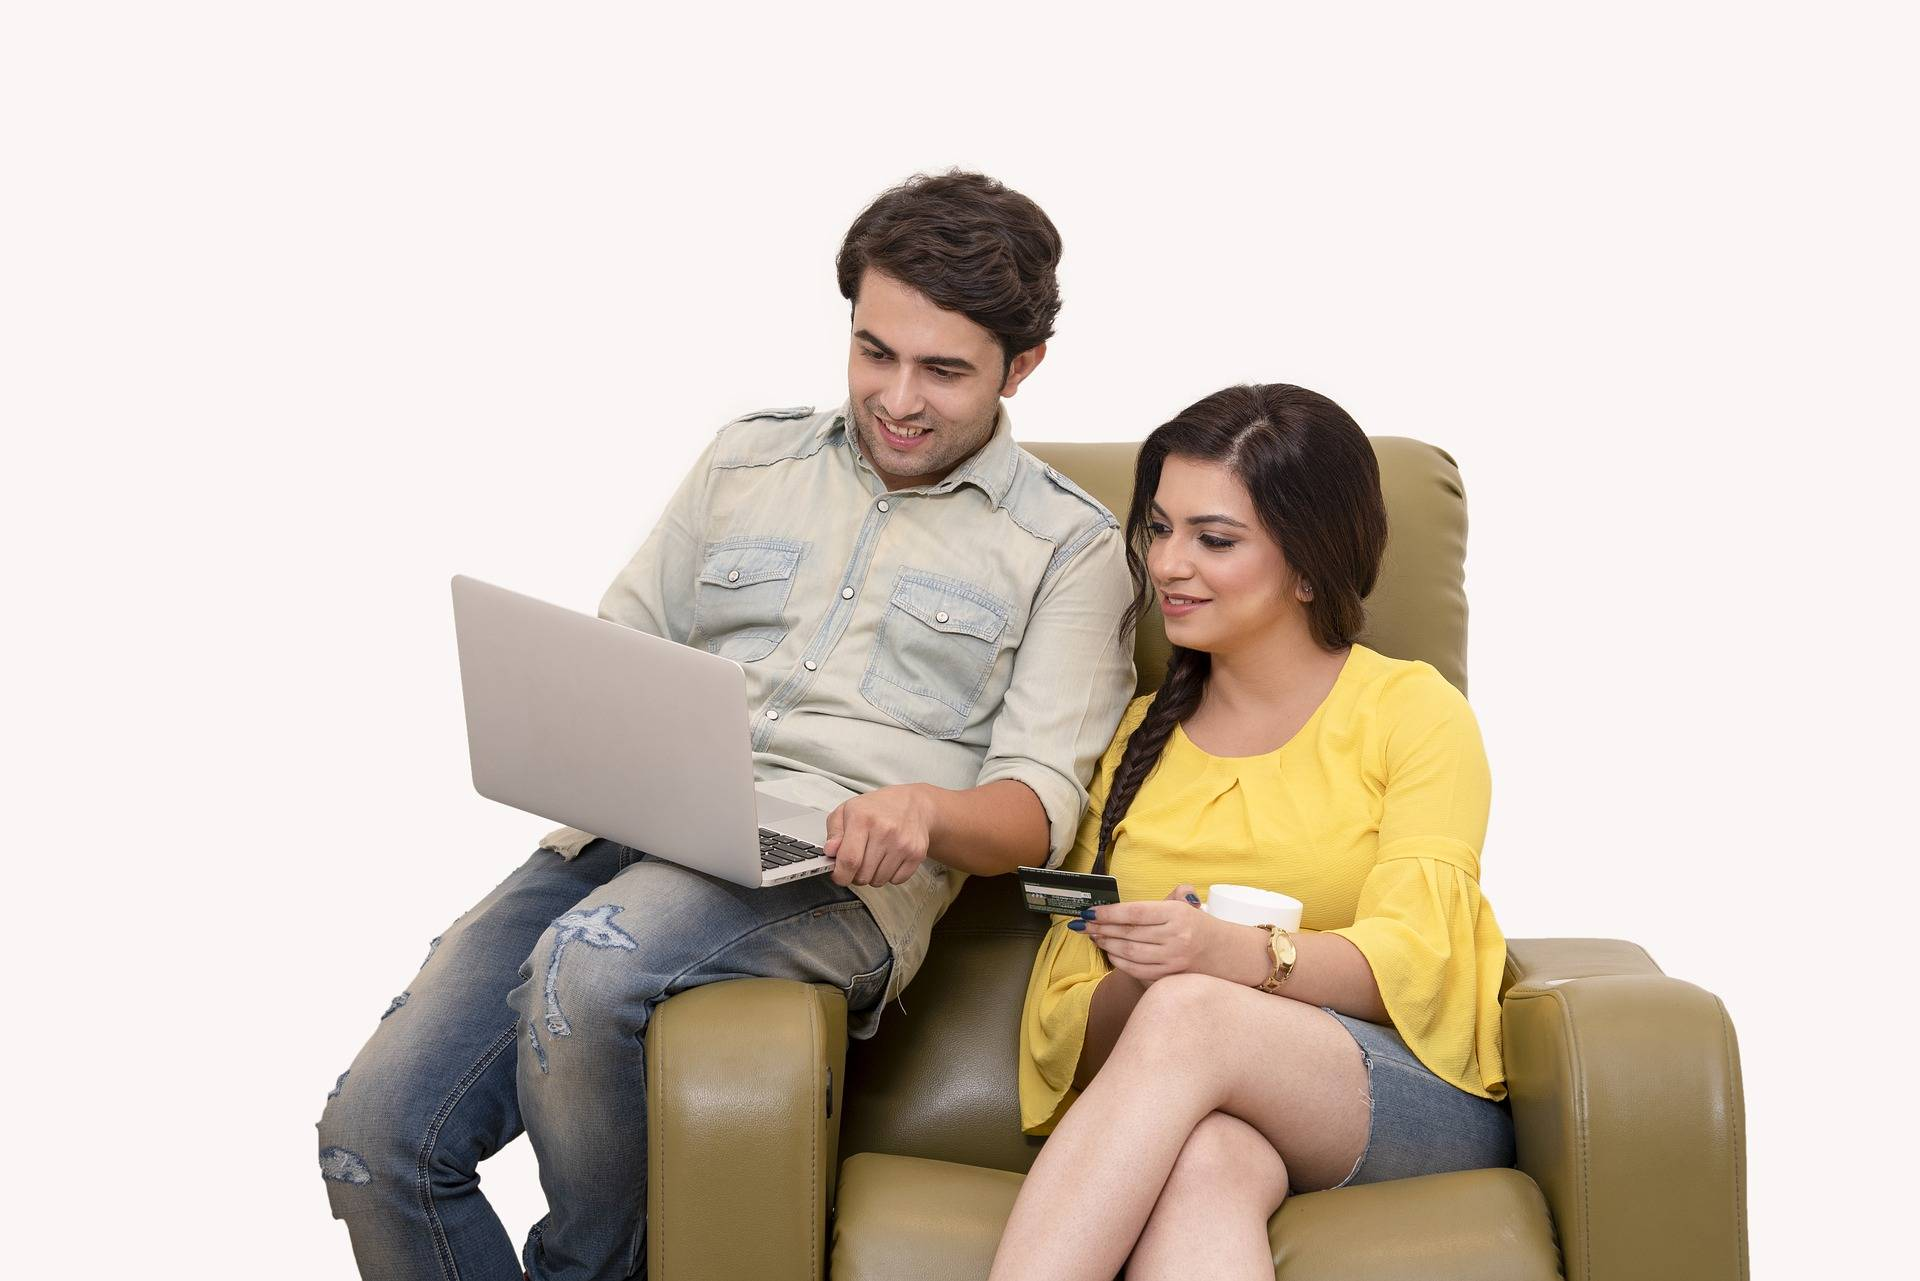 Is it Cheating To Confess Relationship Woes to an Online Confidant